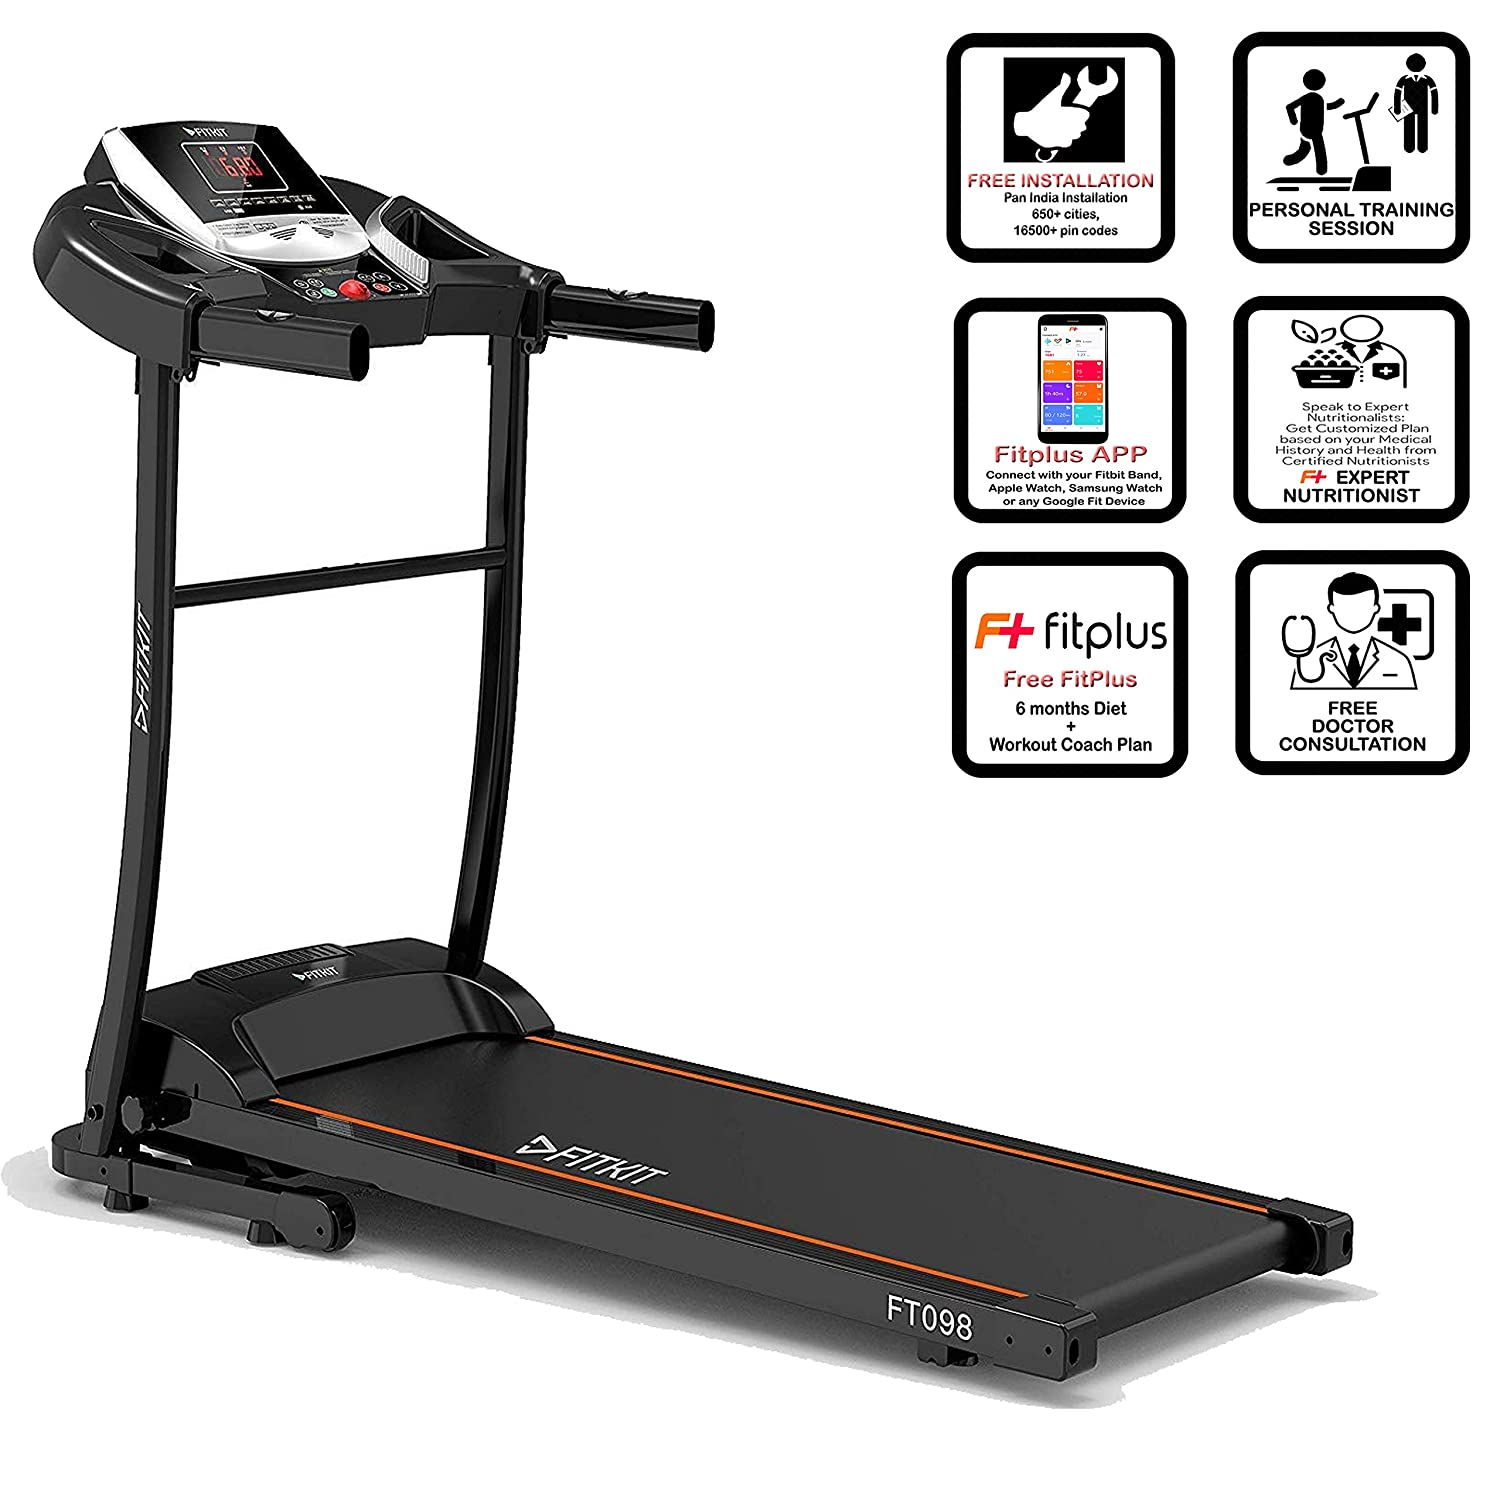 Fitkit FT098 Series (2 HP Peak) Motorized Treadmill with Free Dietitian